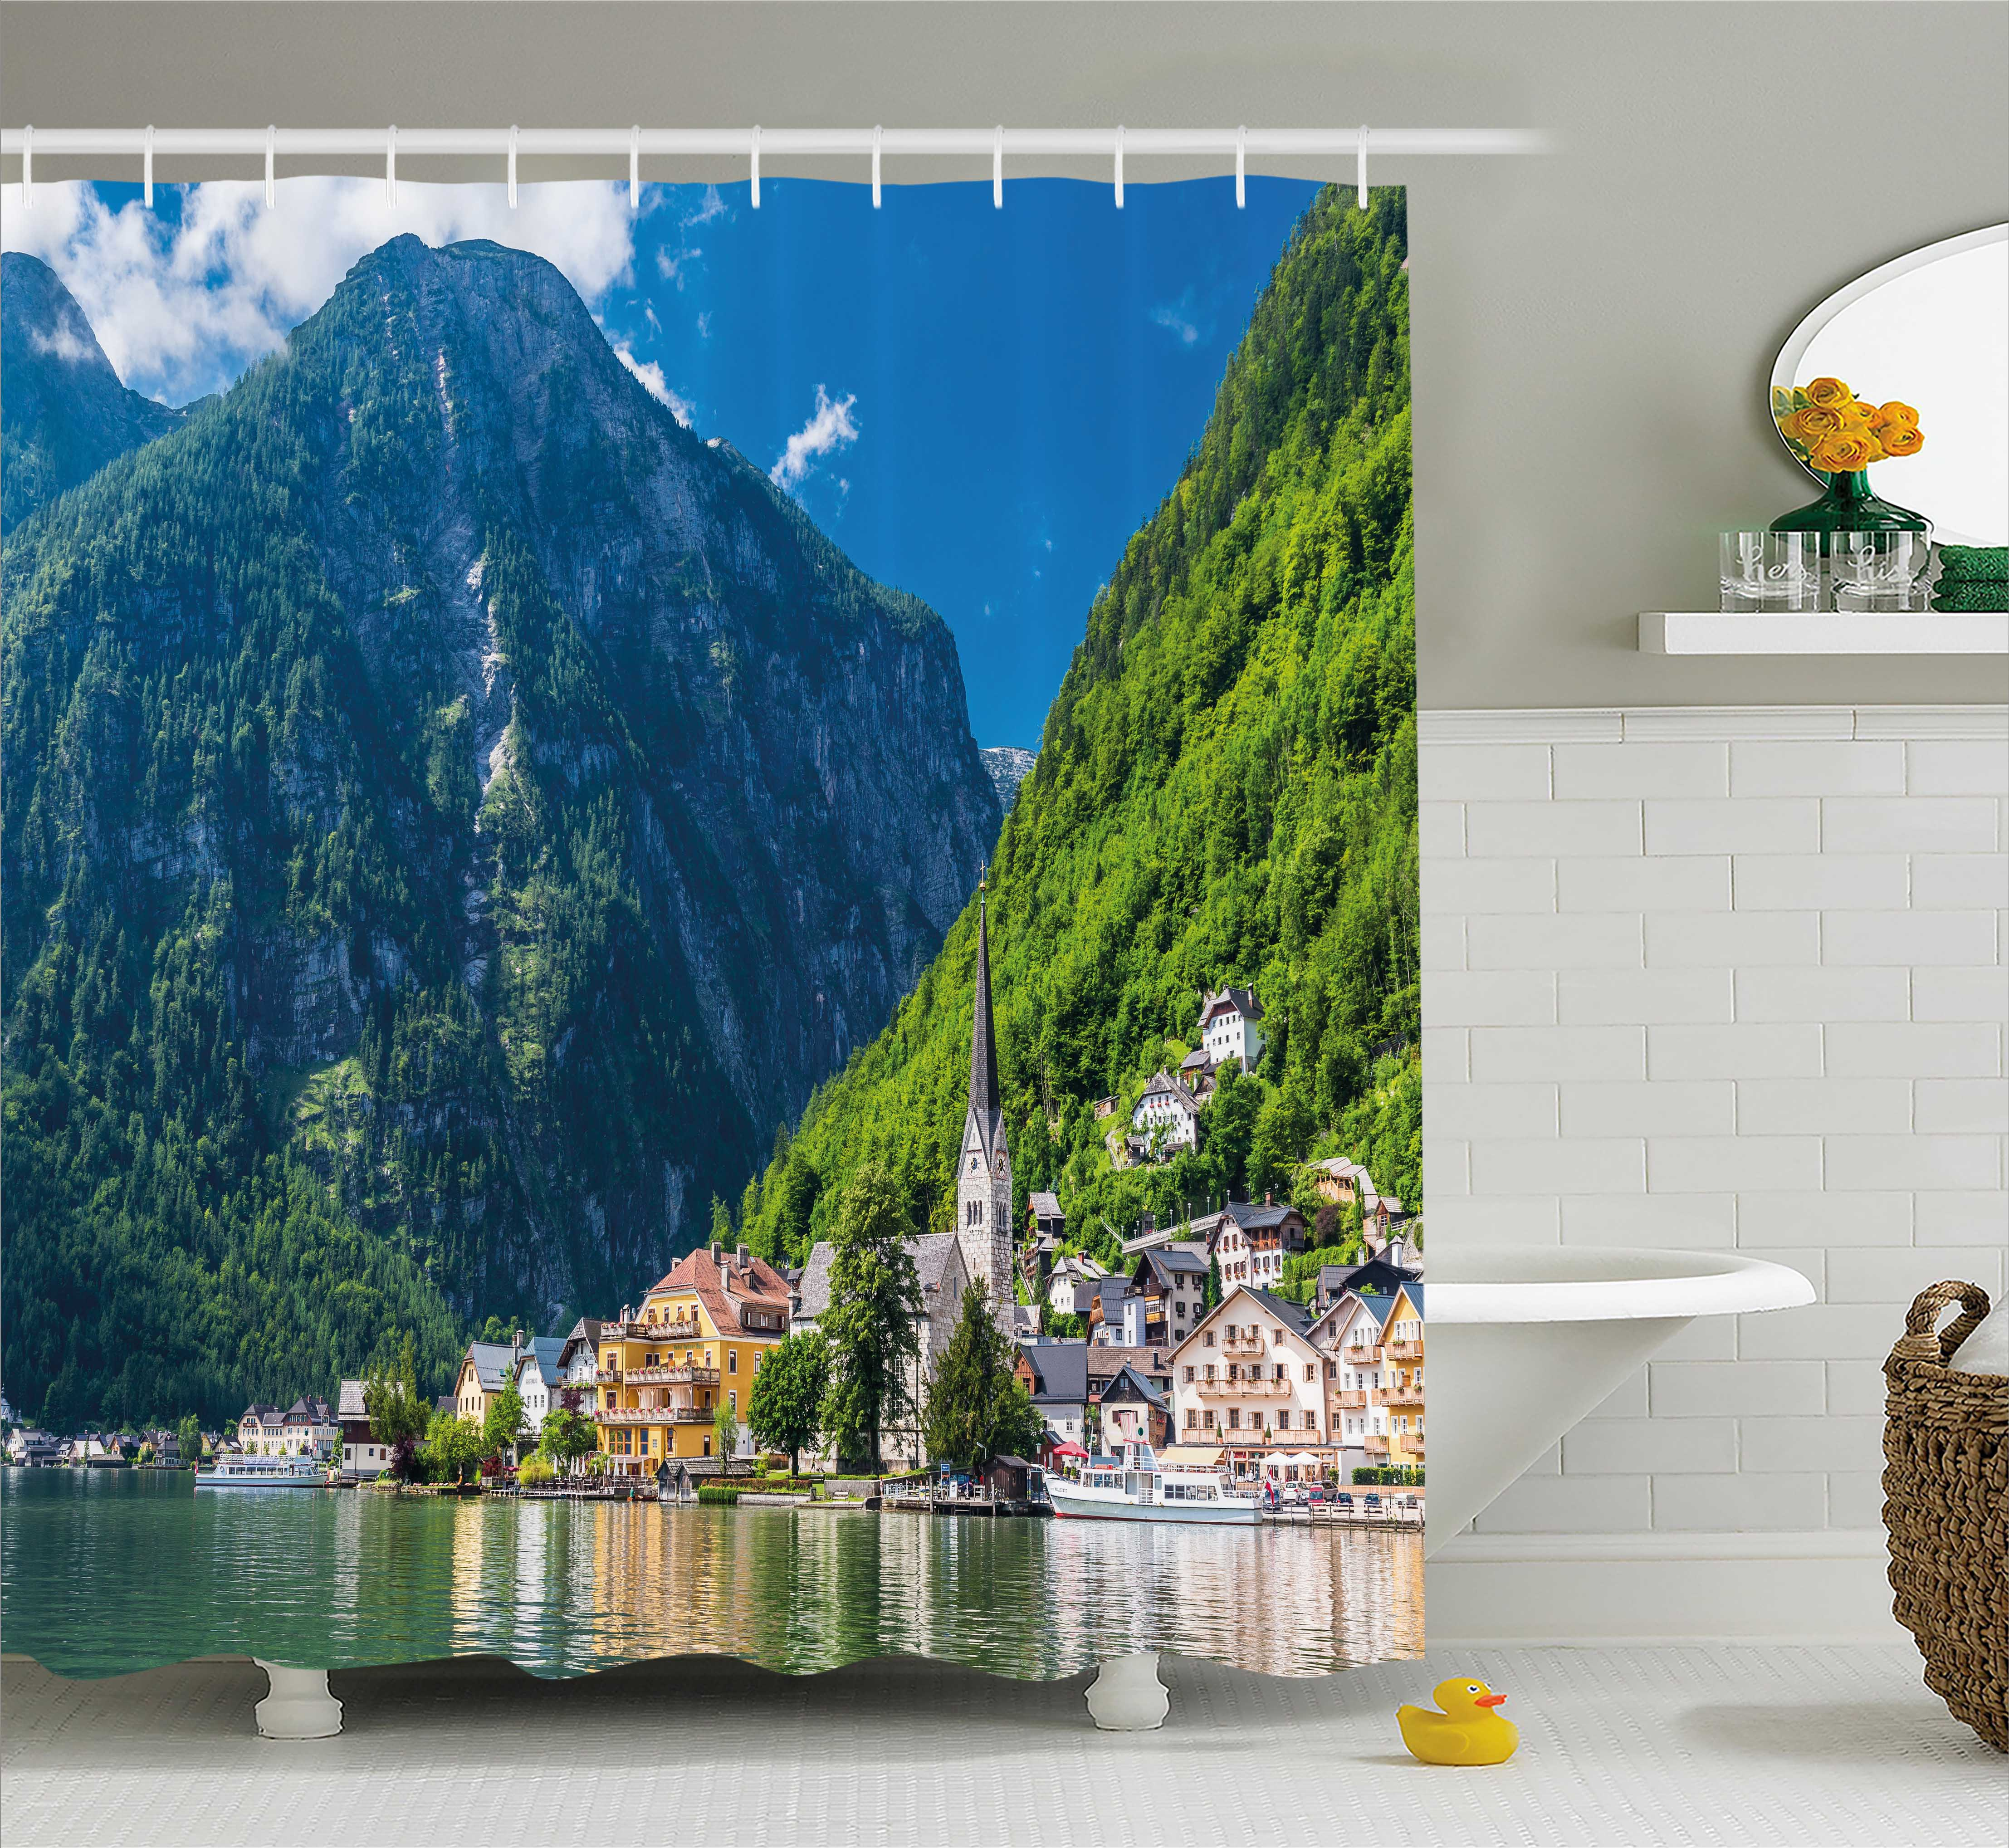 Landscape Shower Curtain, Natural View of Hallstatt in Austria Mountains Forest Town Houses Clear Sky, Fabric Bathroom Set with Hooks, 69W X... by Kozmos